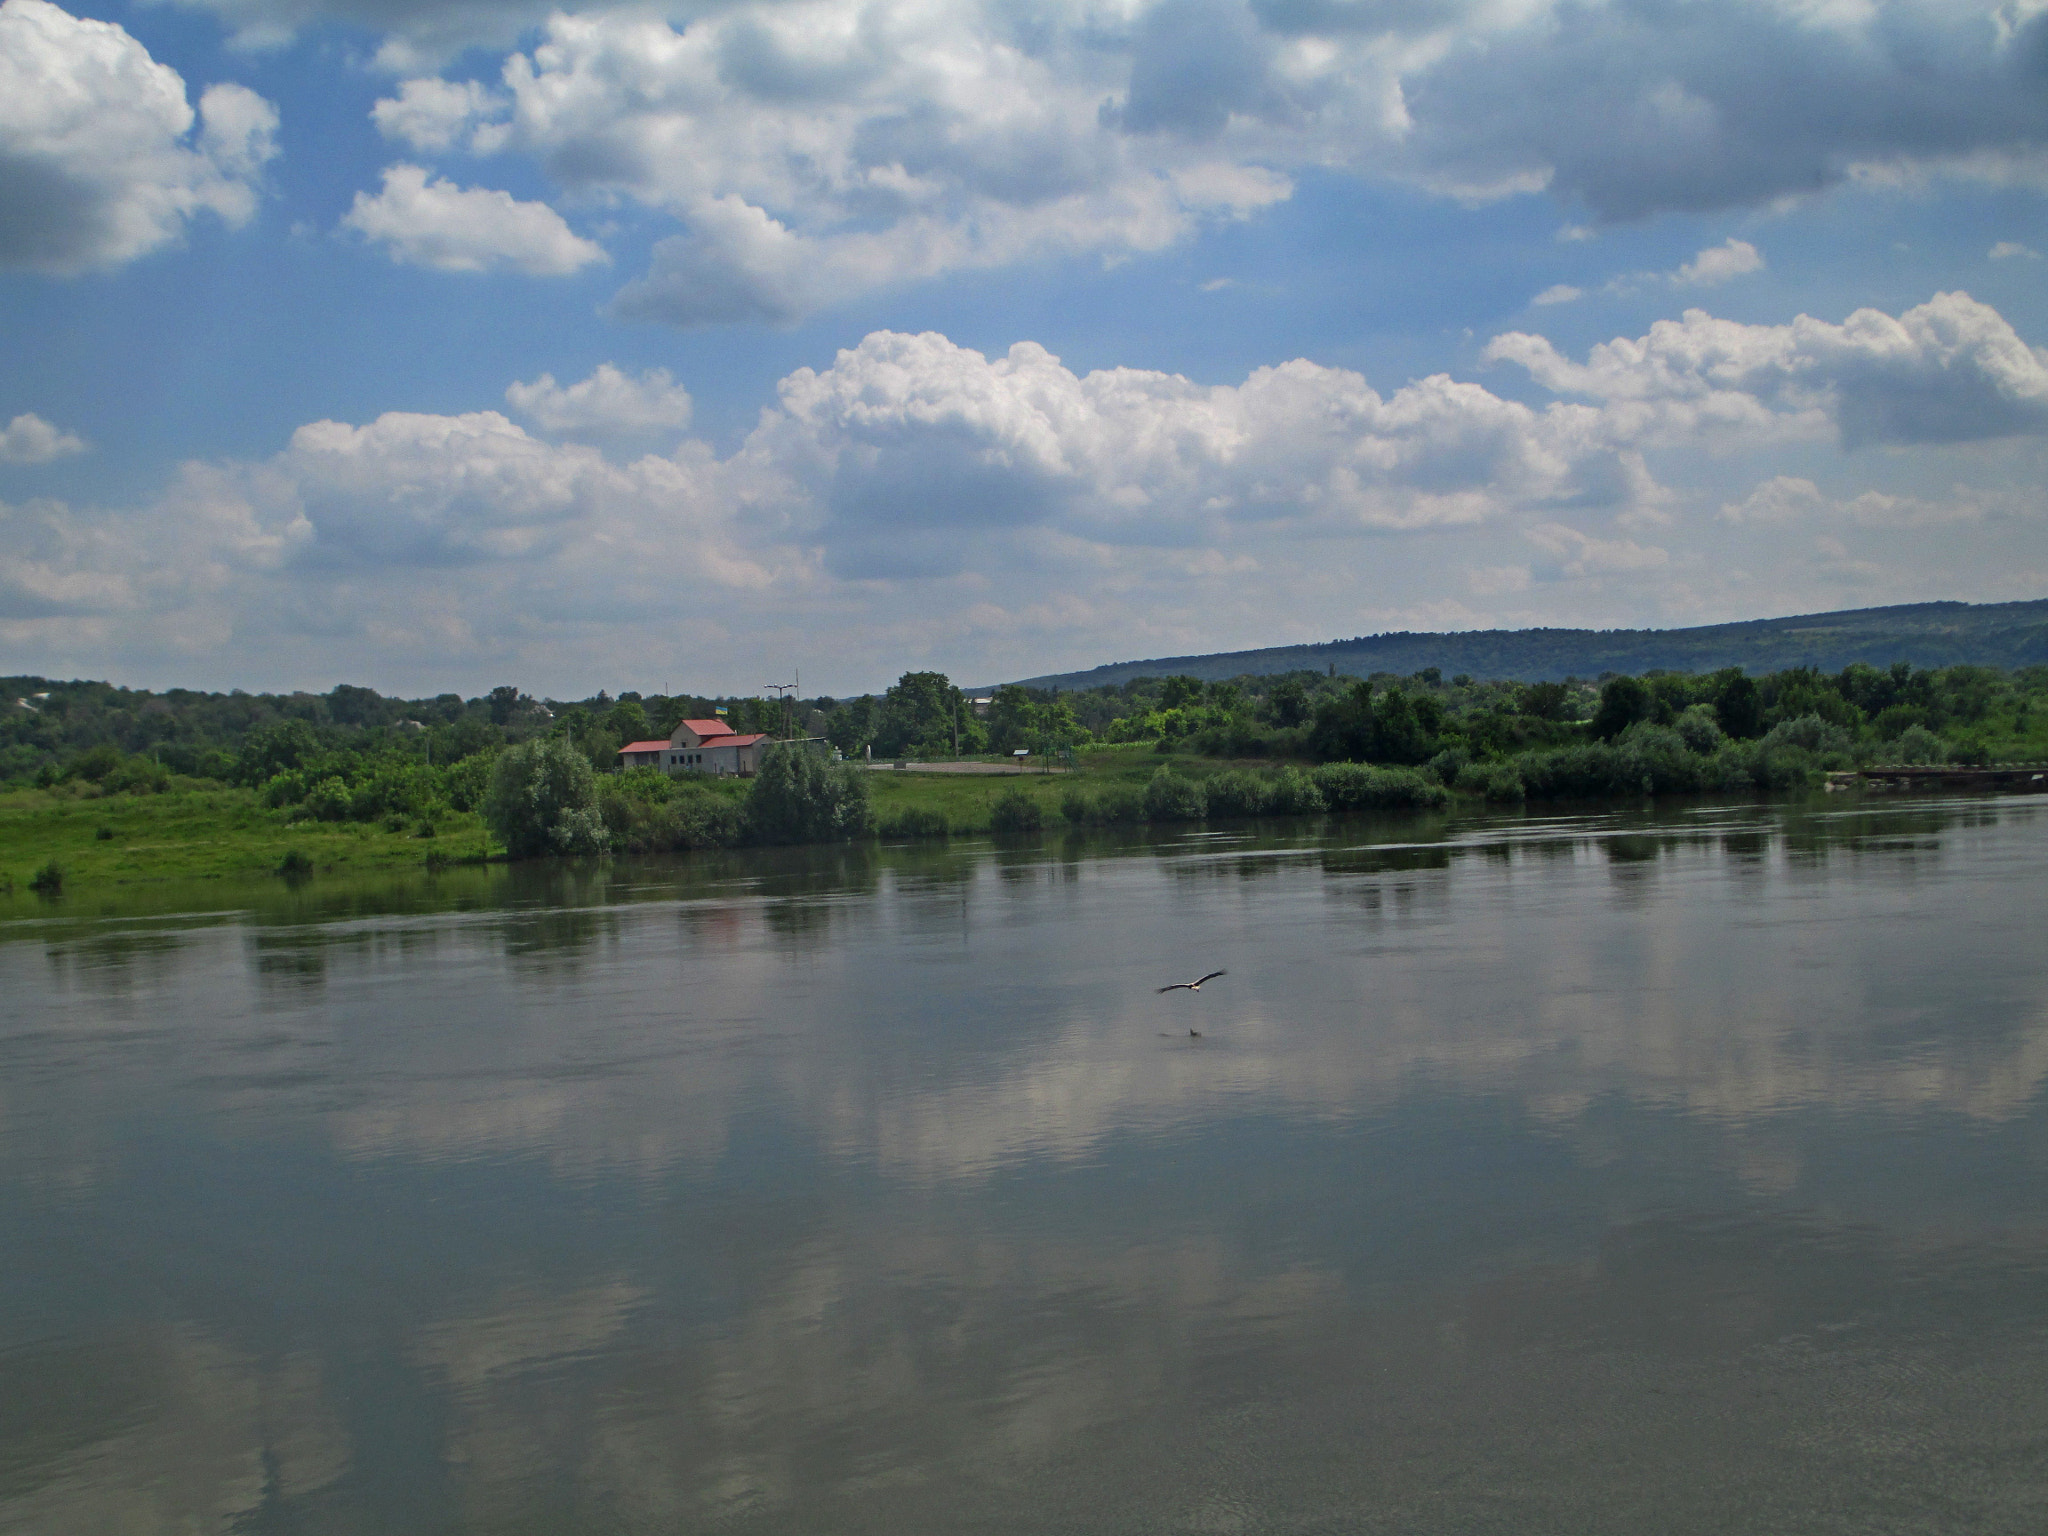 Photograph The Dniester River. by andreykob on 500px